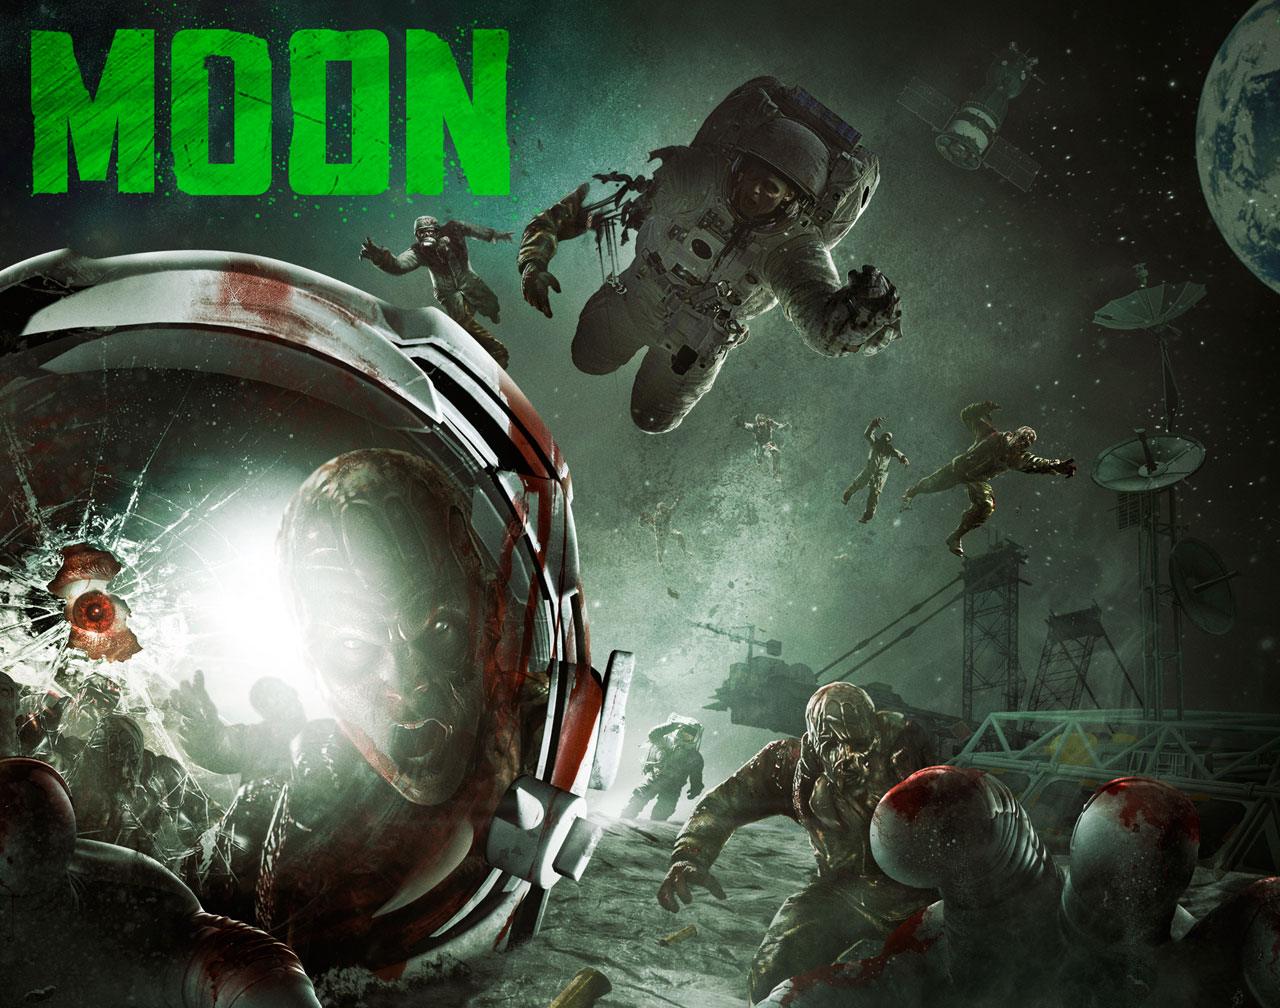 Aug 23, 2011 Have Some Heavy Metal With Your Moon-Zombies in ... Call Of Duty Rezurrection Map Pack on